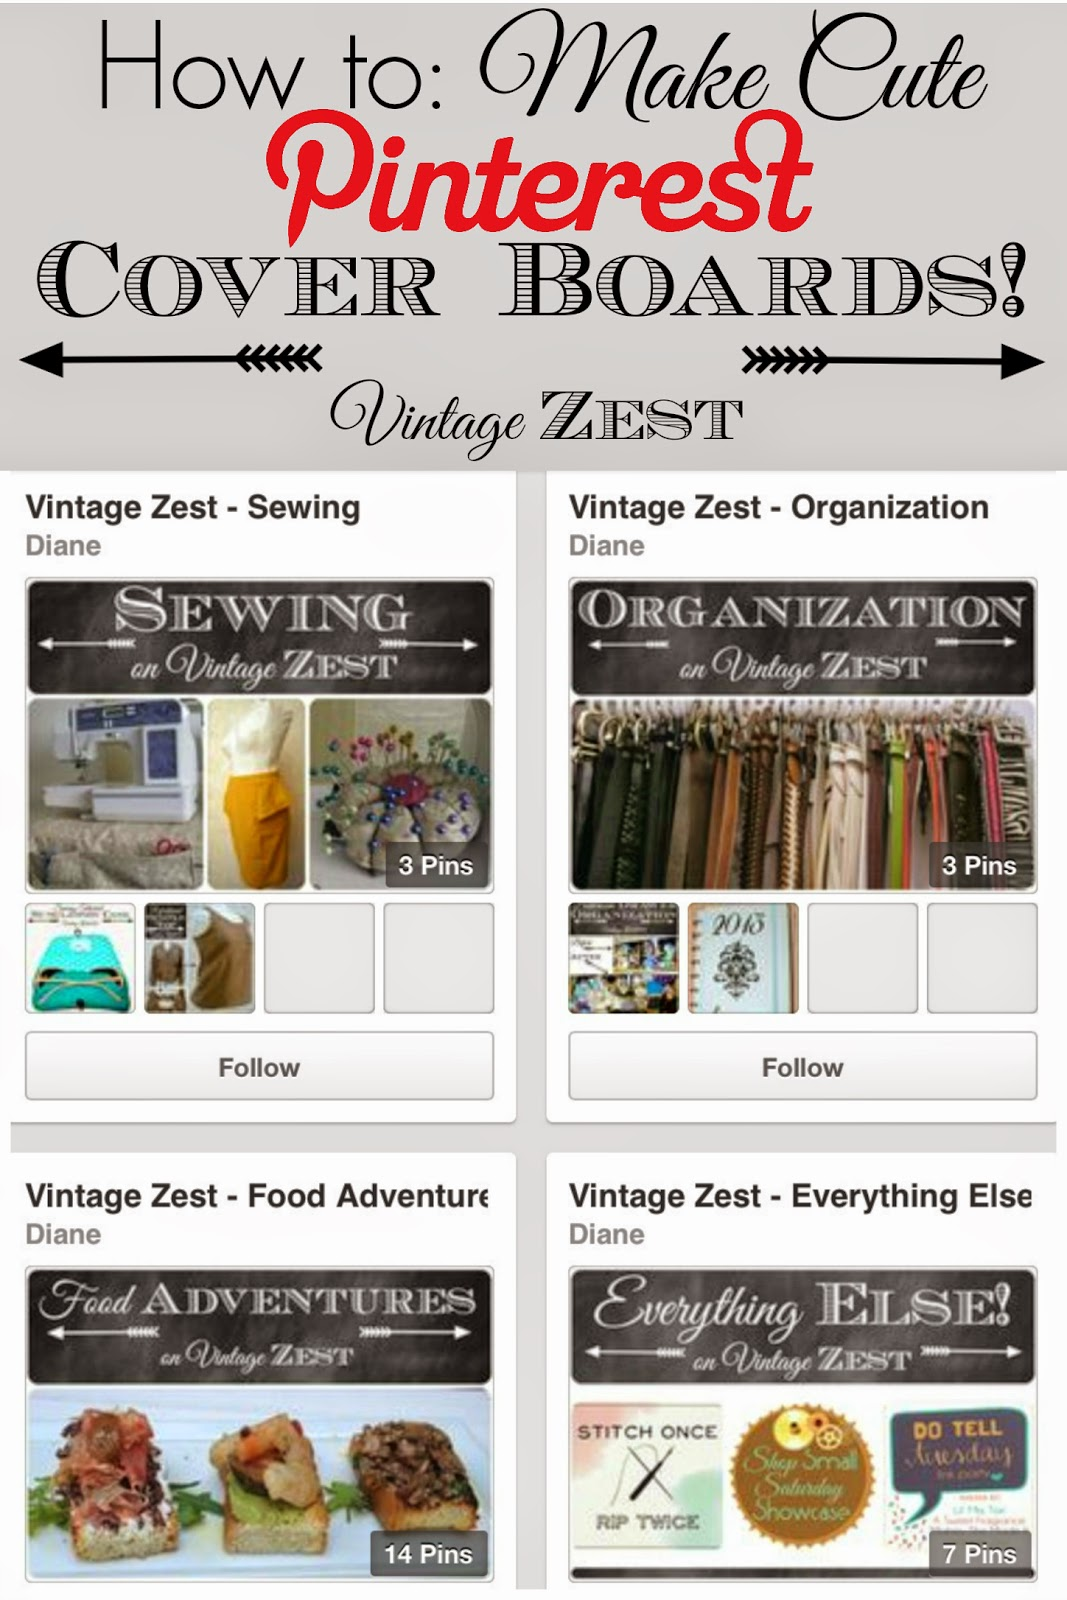 How to Make Pinterest Board Covers